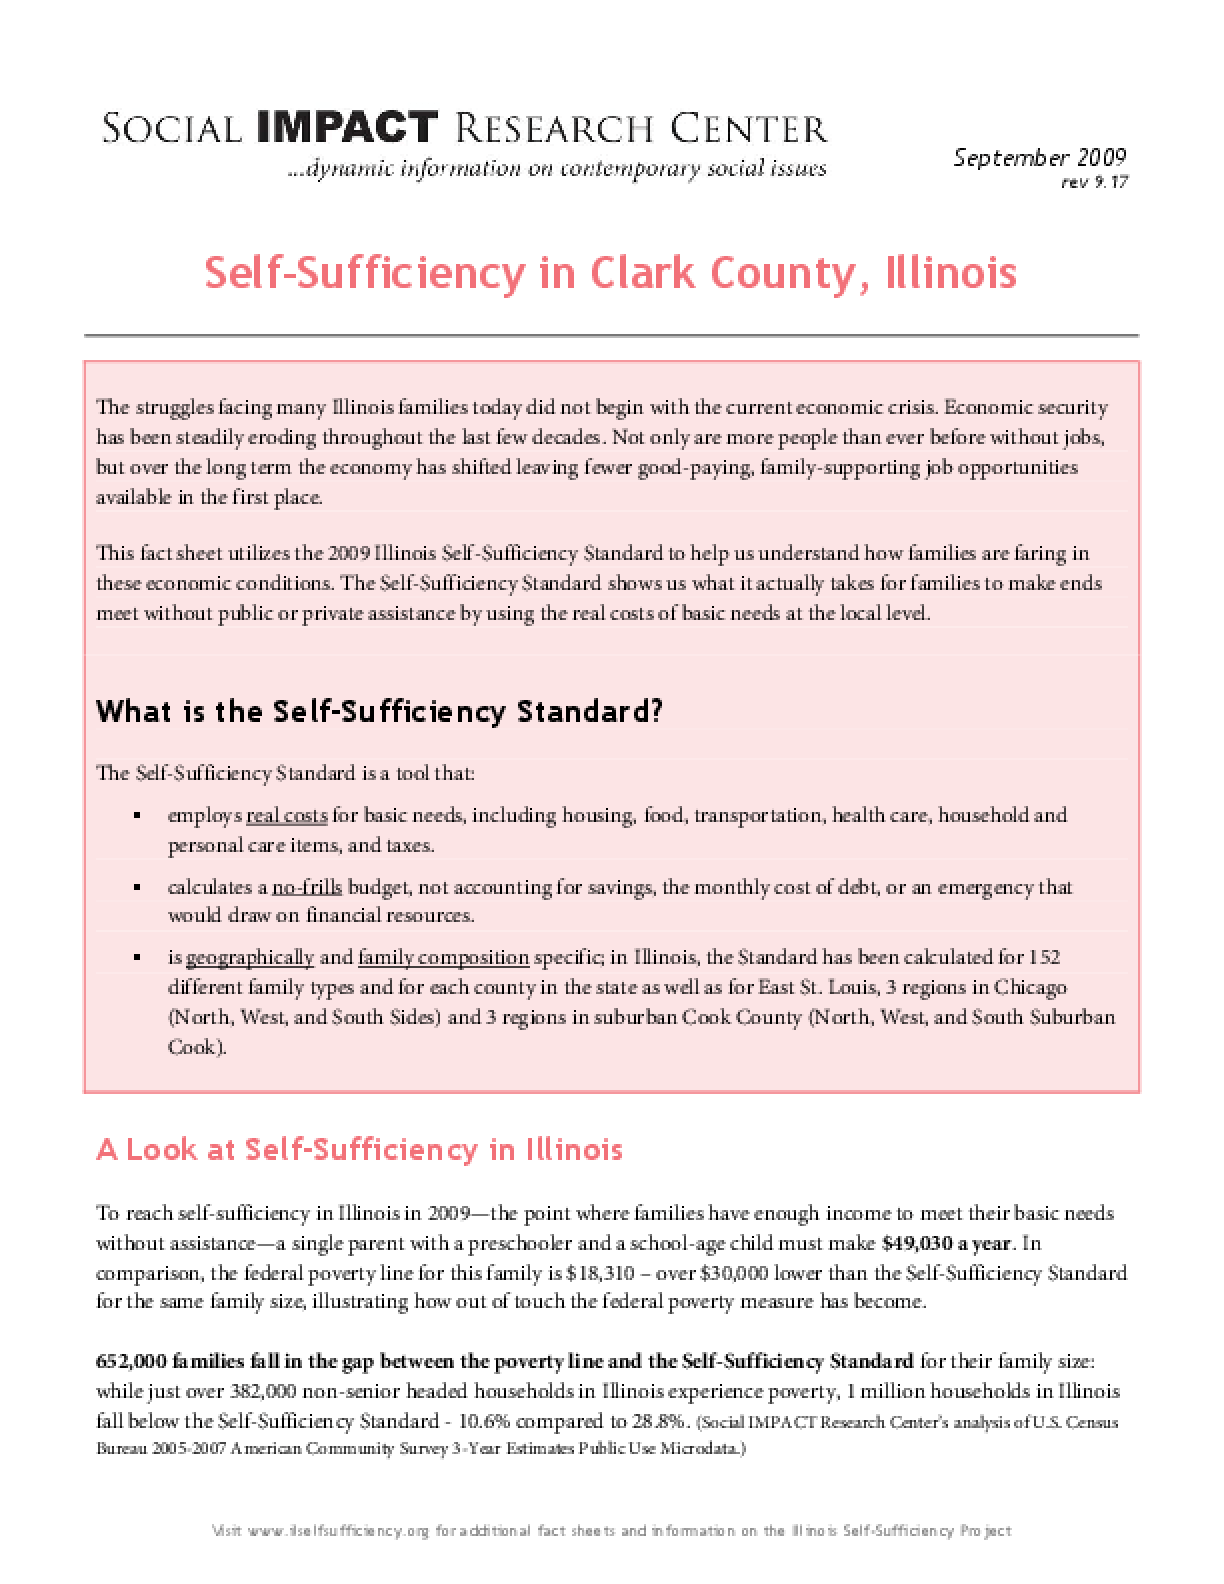 Self-Sufficiency in Clark County, Illinois